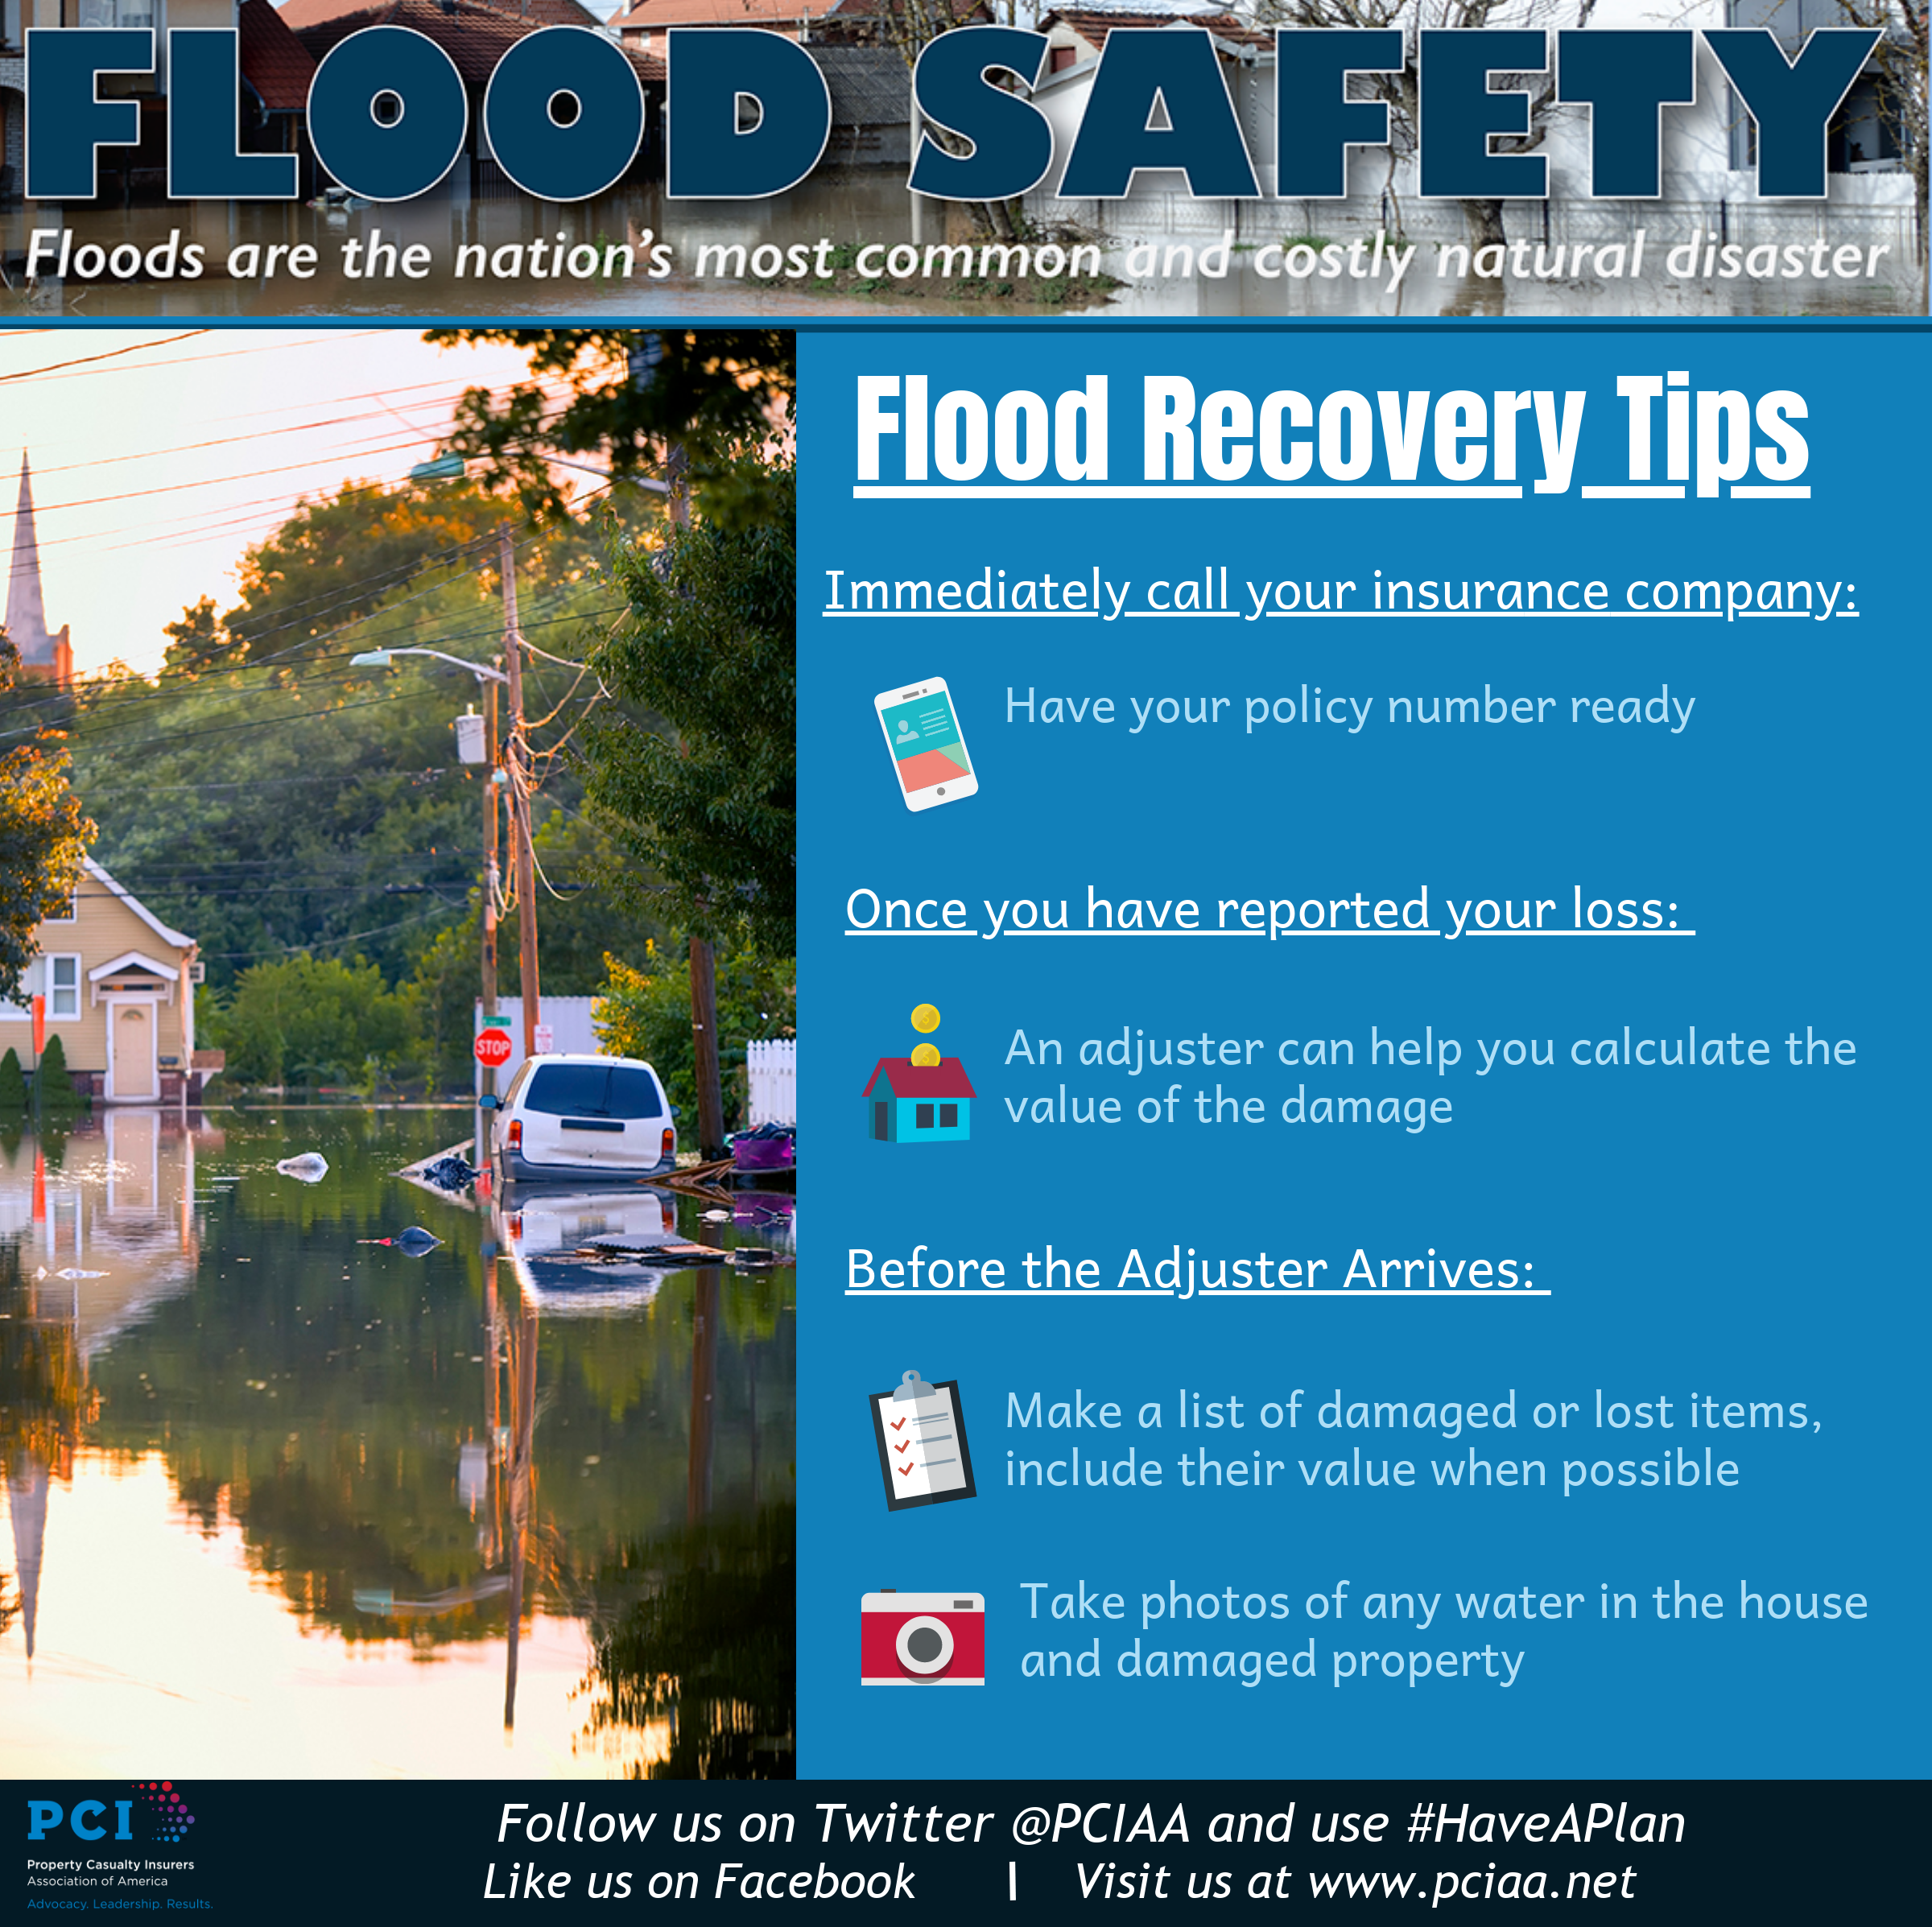 Pin By Danielle Surch On Natcat Infographics Natural Disasters